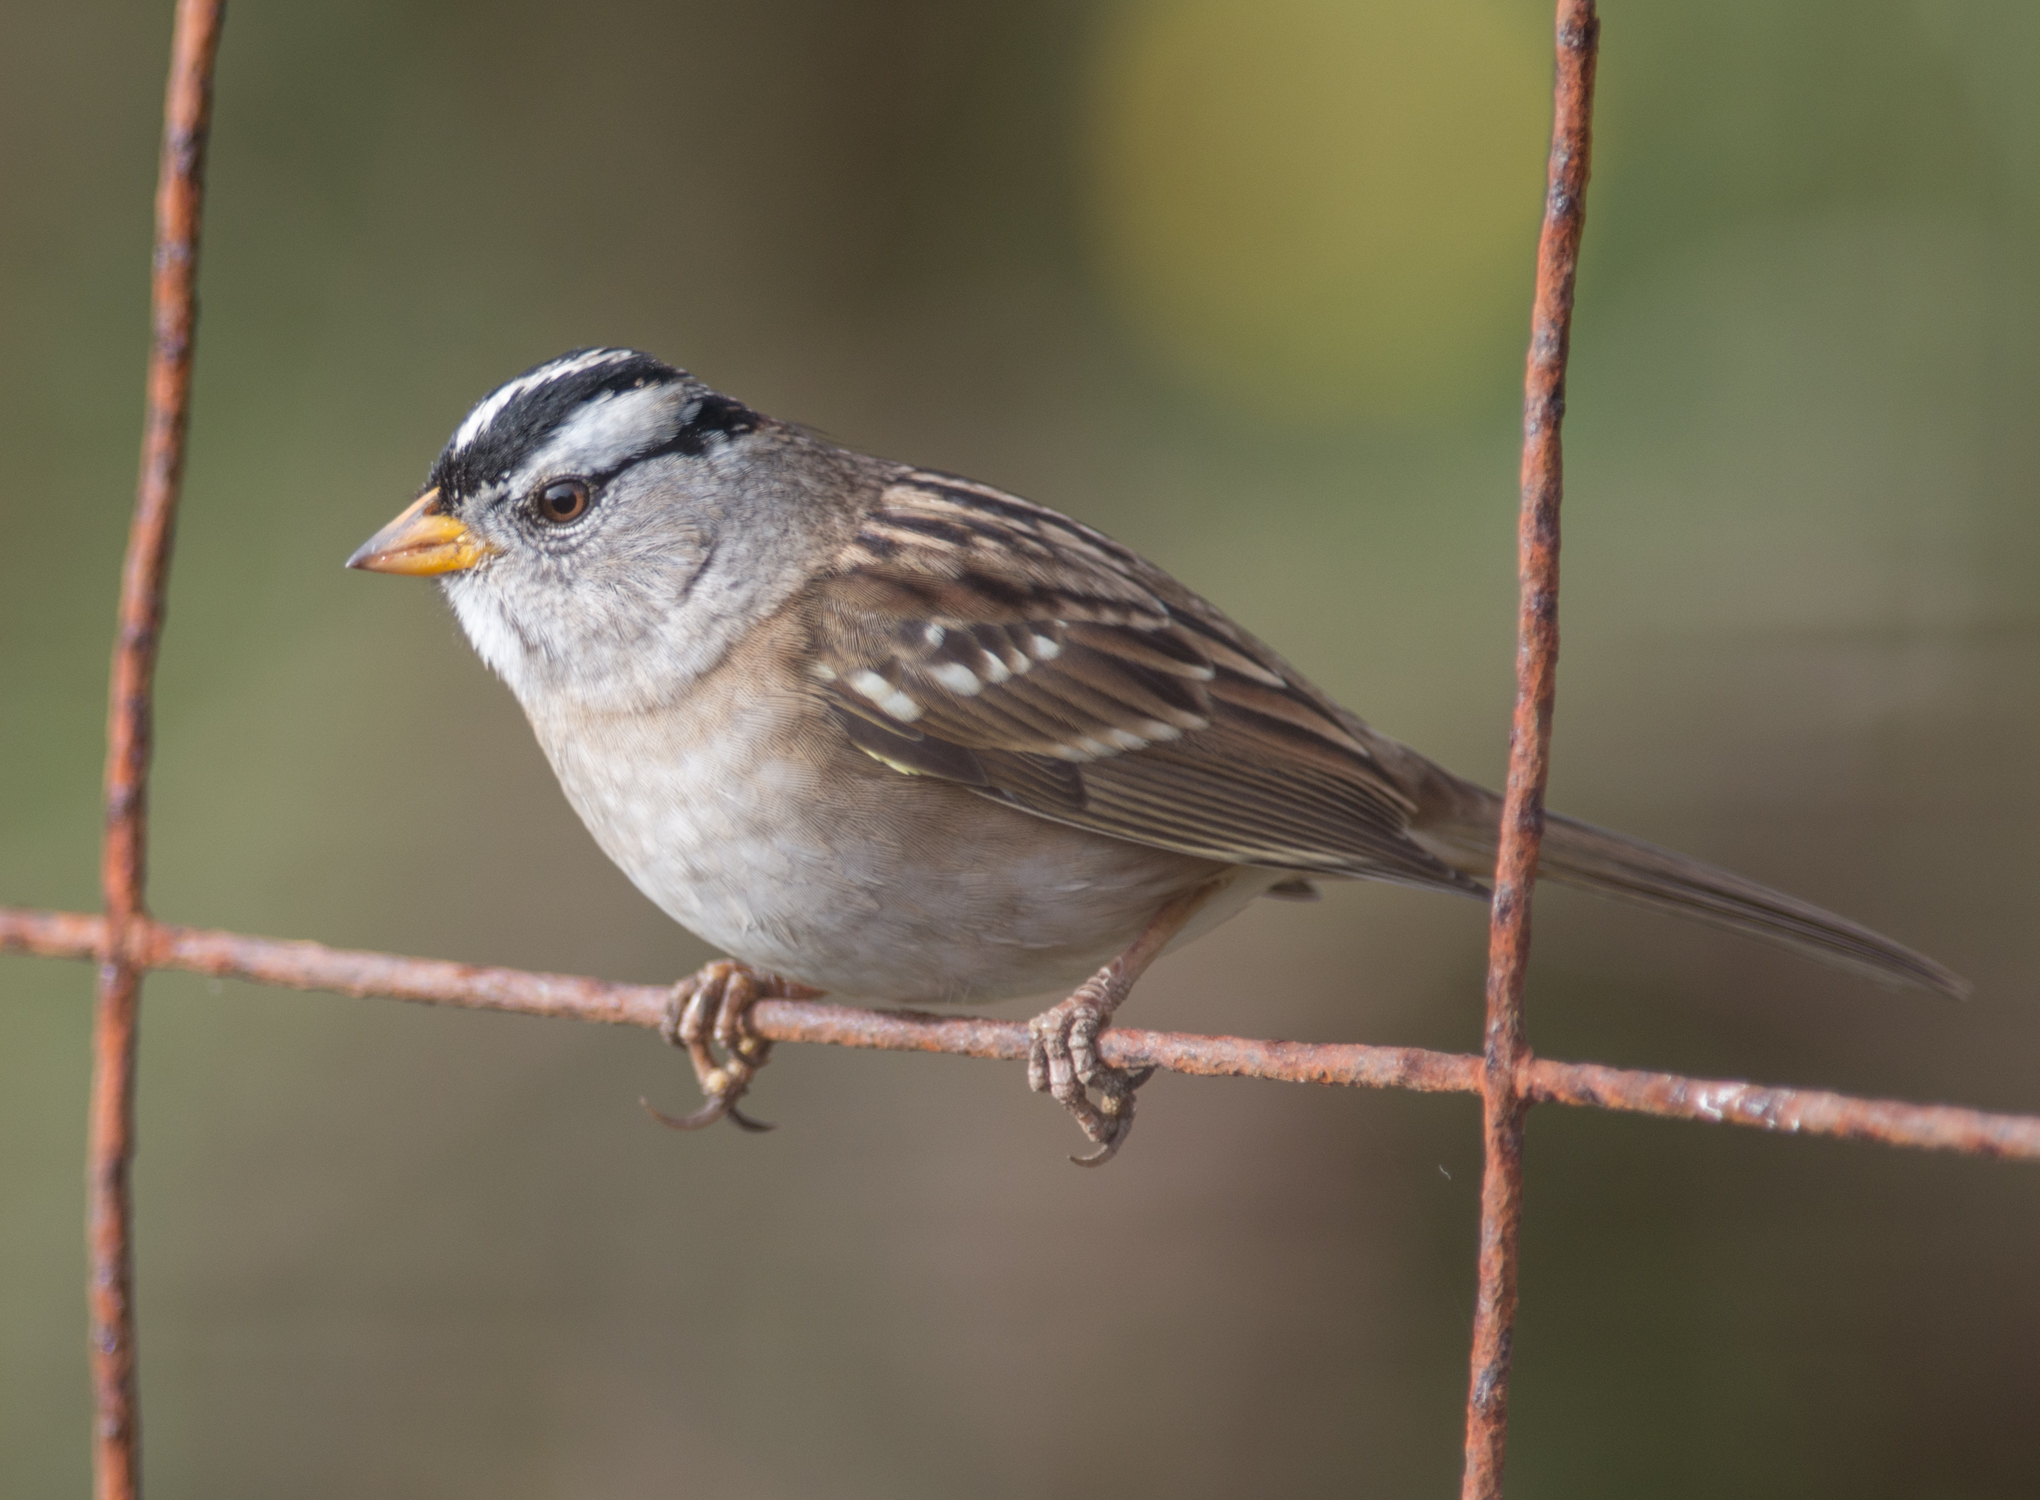 White-crowned Sparrow (Zonotrichia leucophrys)   500mm,  1/640,  f/4.8 , ISO180  10-09-14 9:30 Overcast